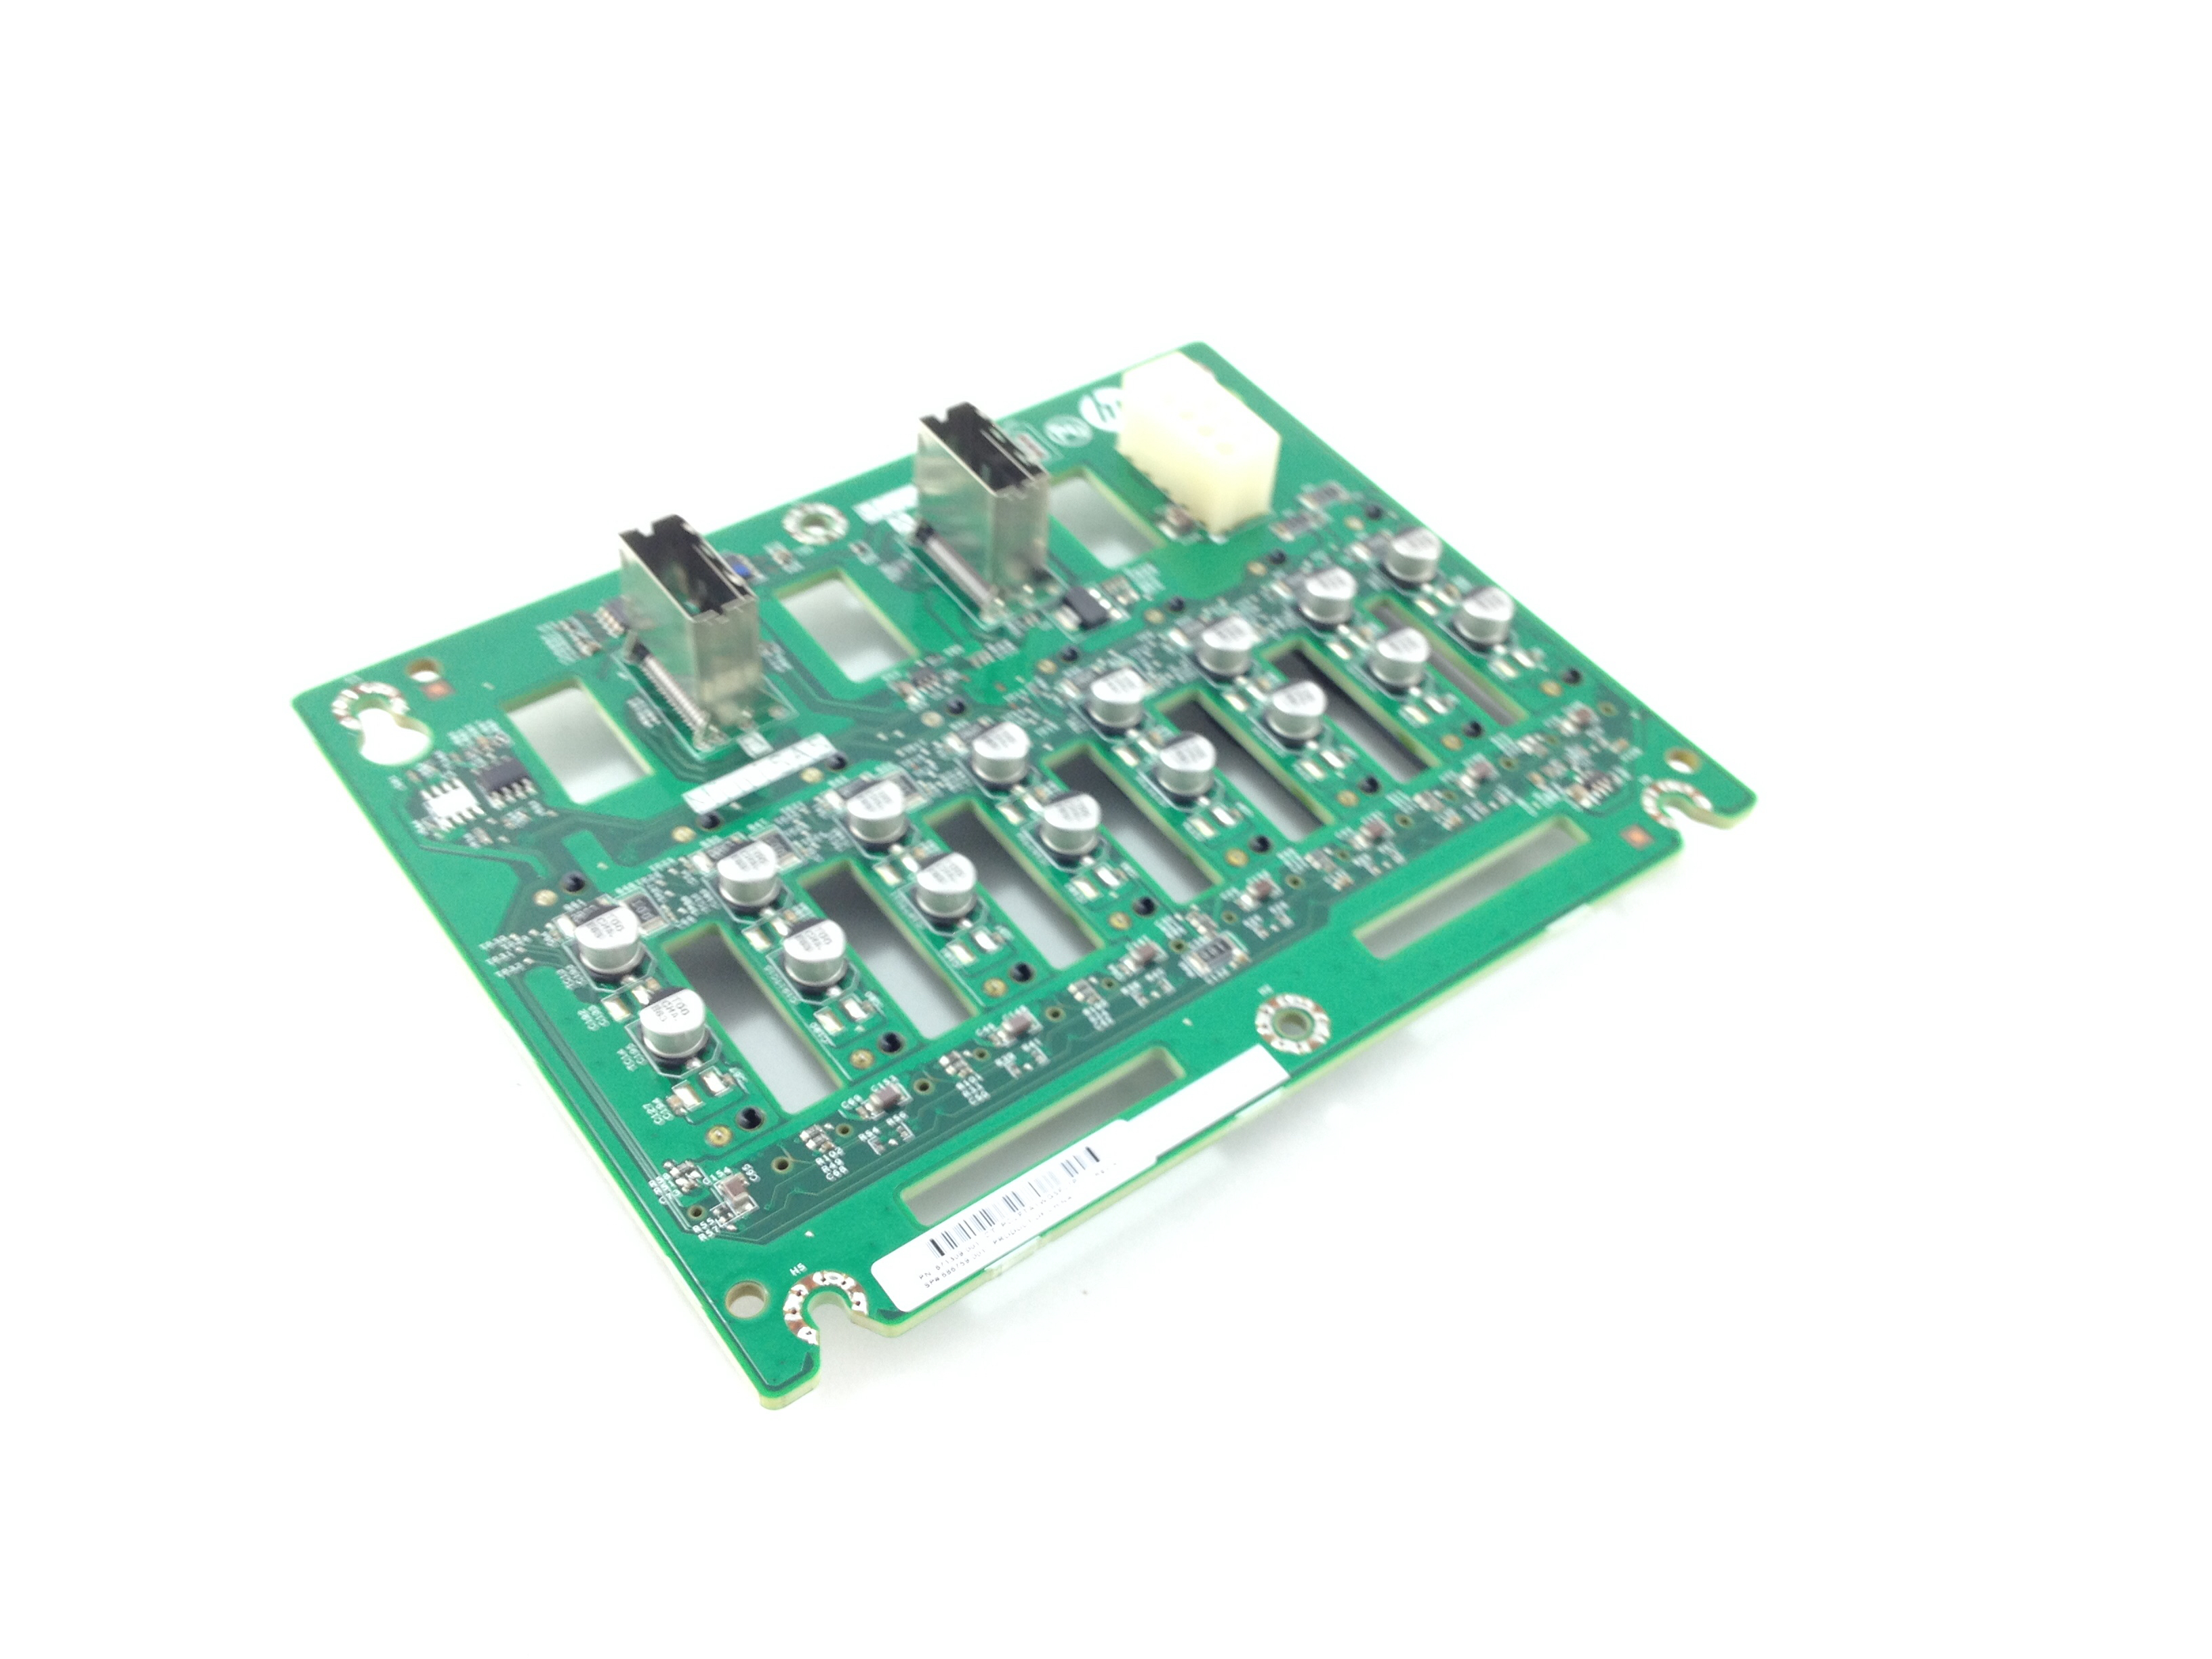 Details about 671309-001 HP Backplane Board For ML310E G8